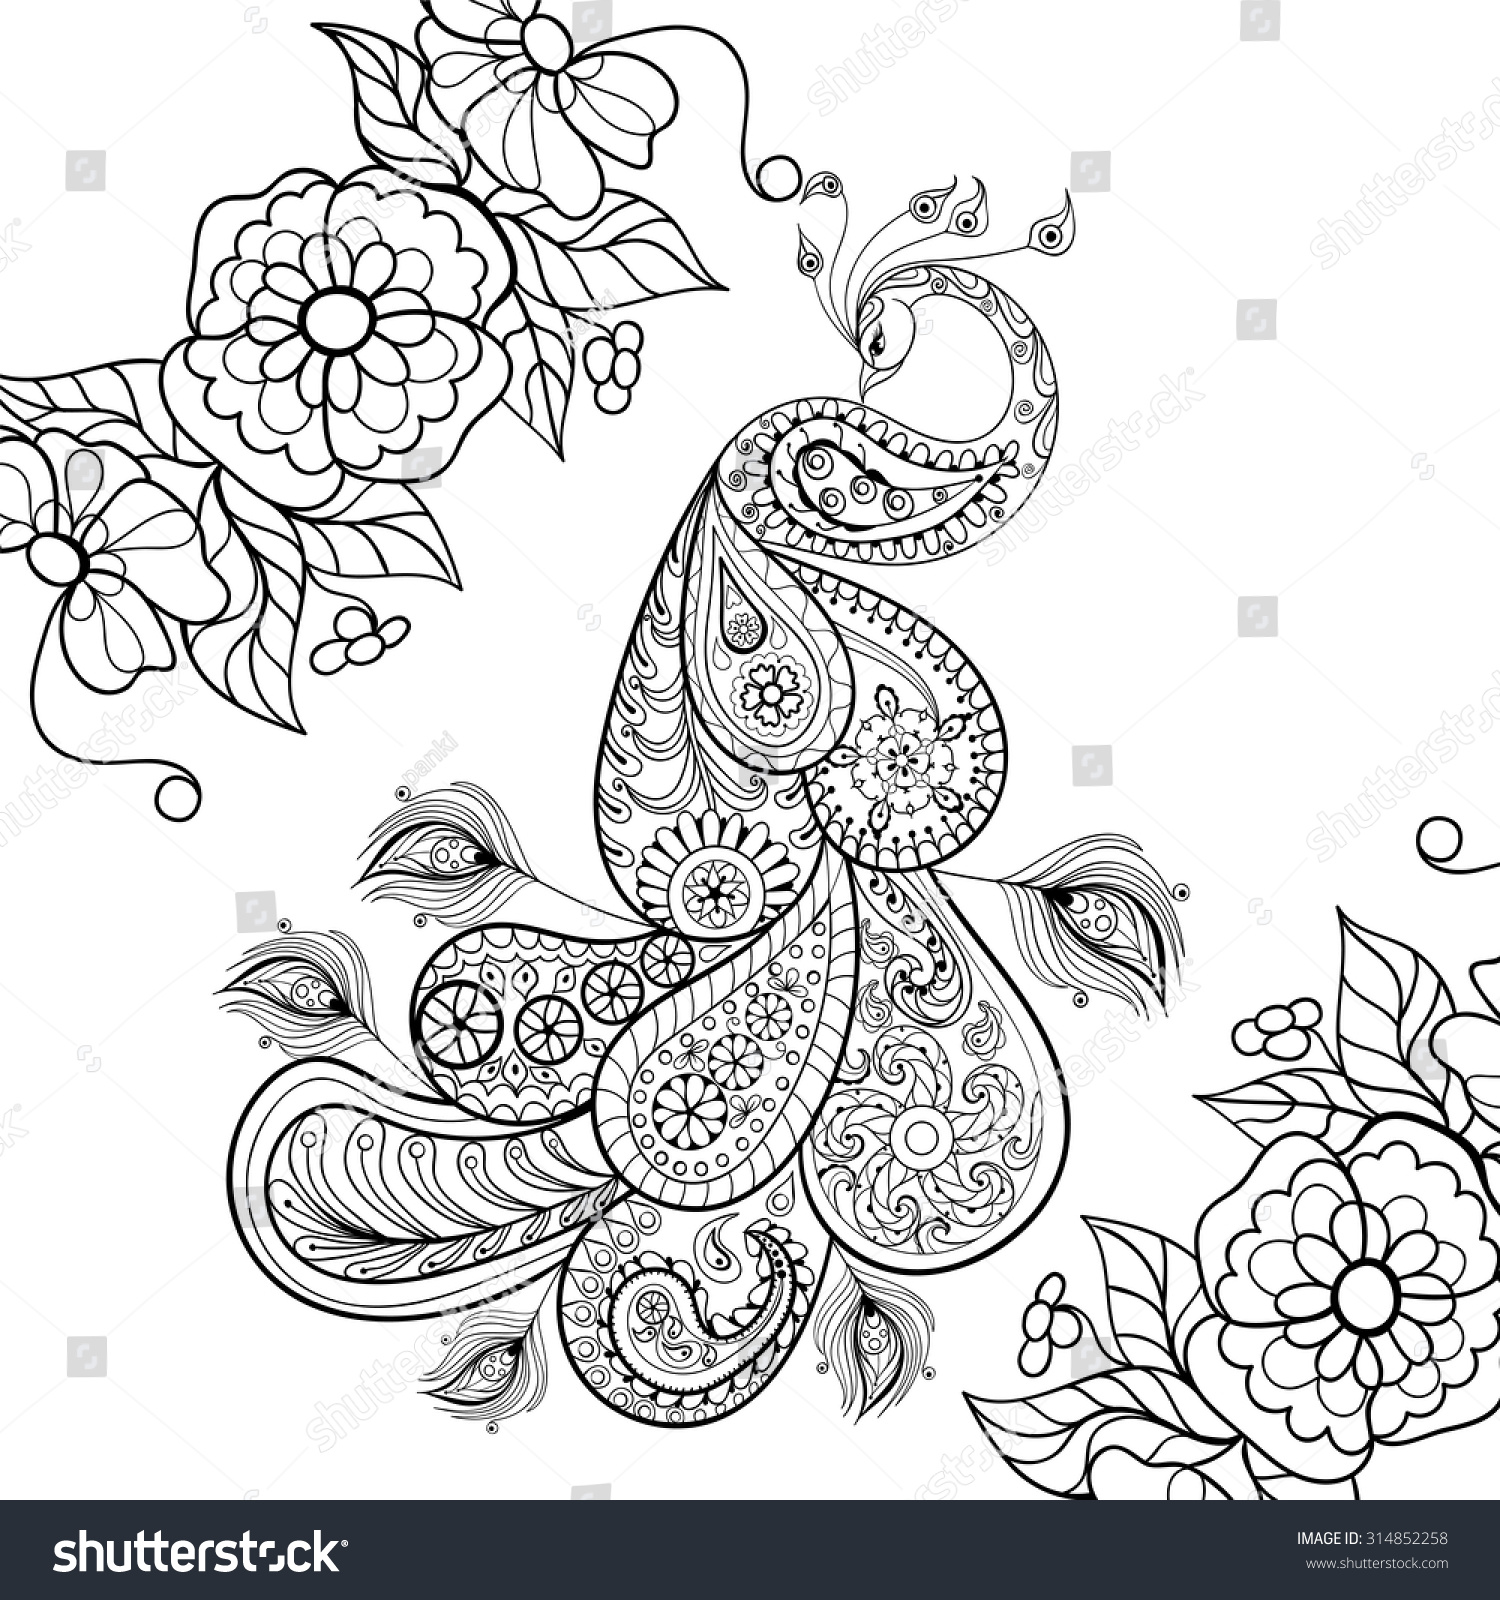 Anti stress coloring therapy - Zentangle Peacock Totem In Flowersfor Adult Anti Stress Coloring Page For Art Therapy Illustration In